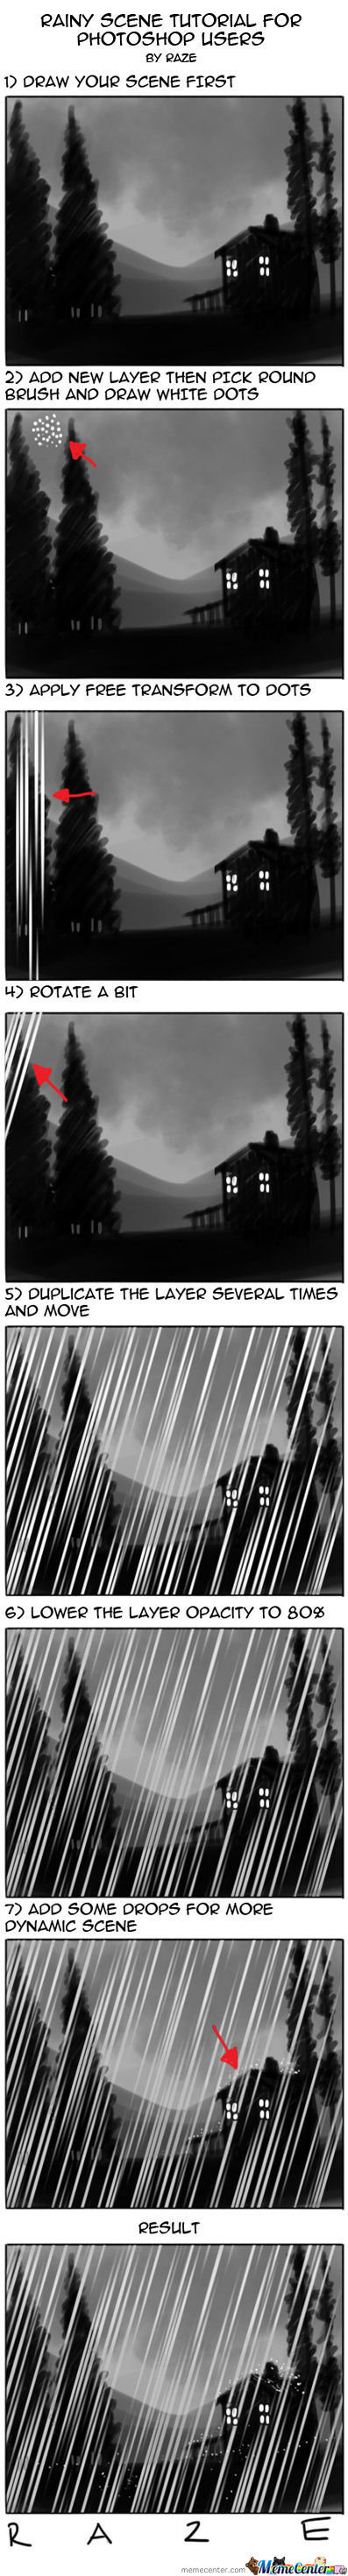 Rainy Scene Tutorial